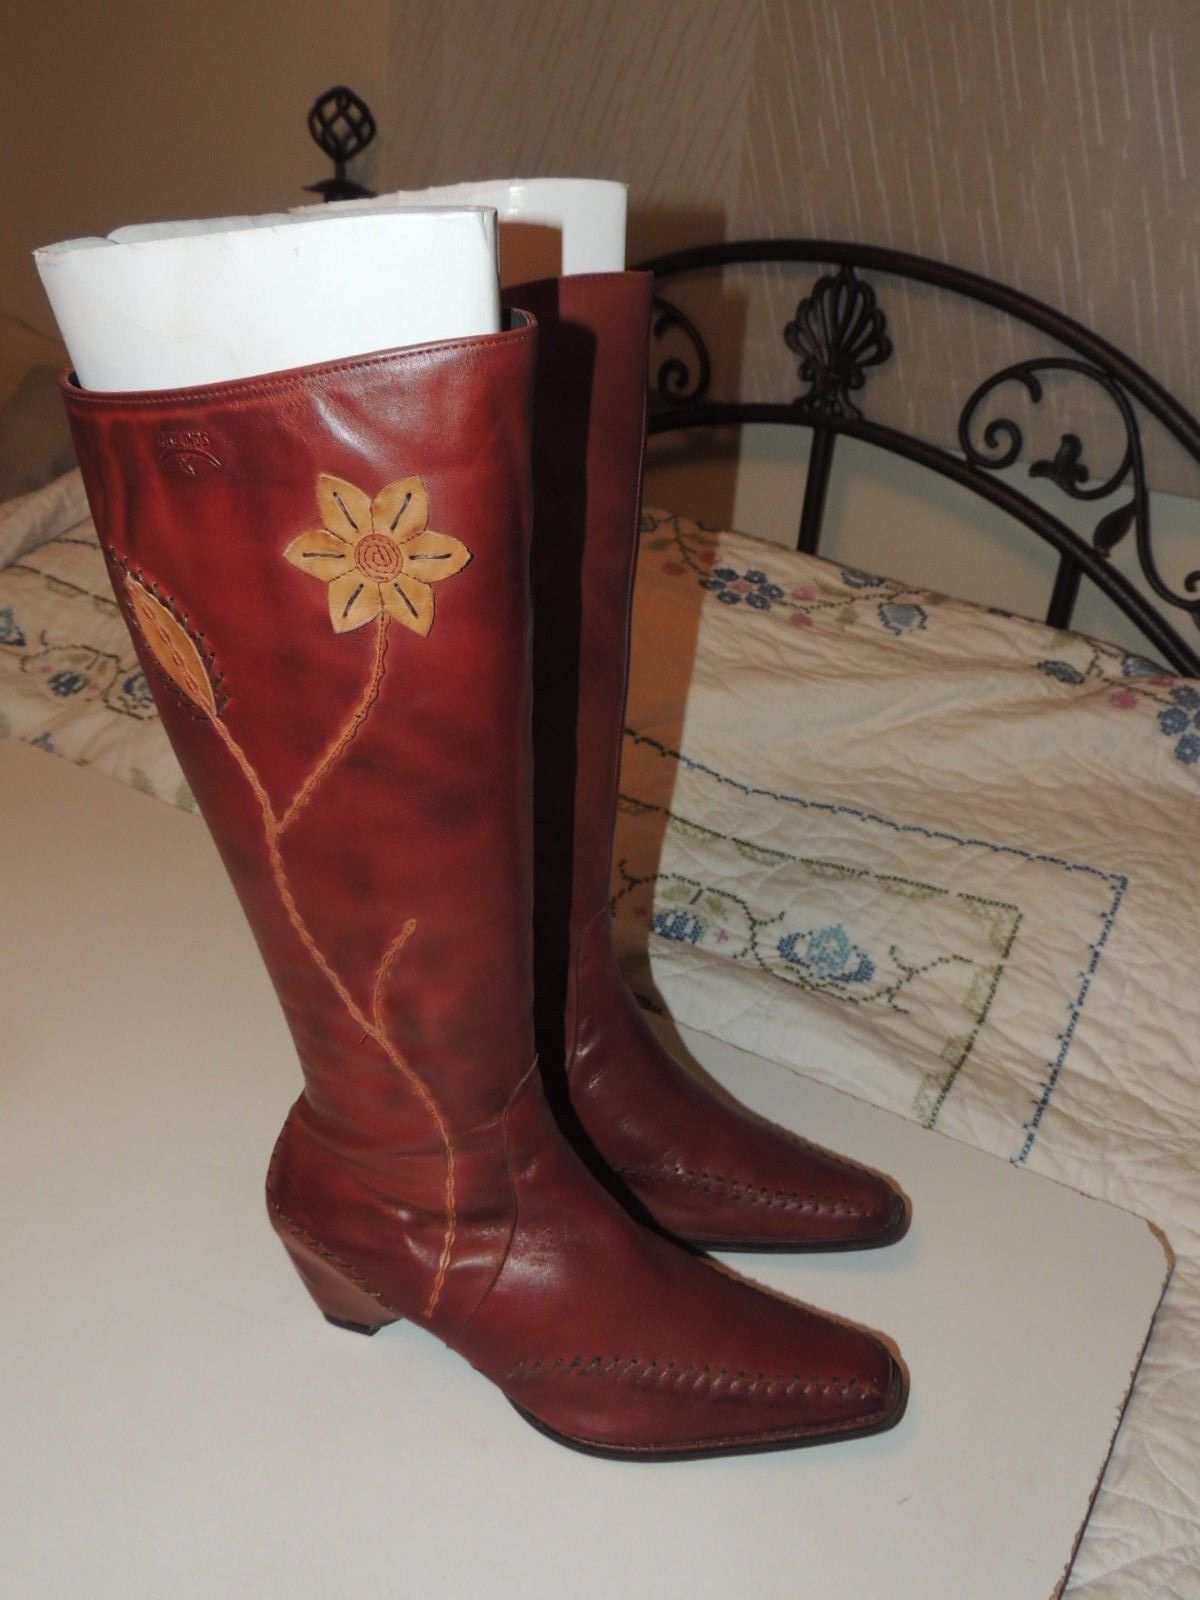 Primary image for Gorgeous PIKOLINOS Brown Leather Tall Boots w Zipper Flower Size 40 8.5 EUC